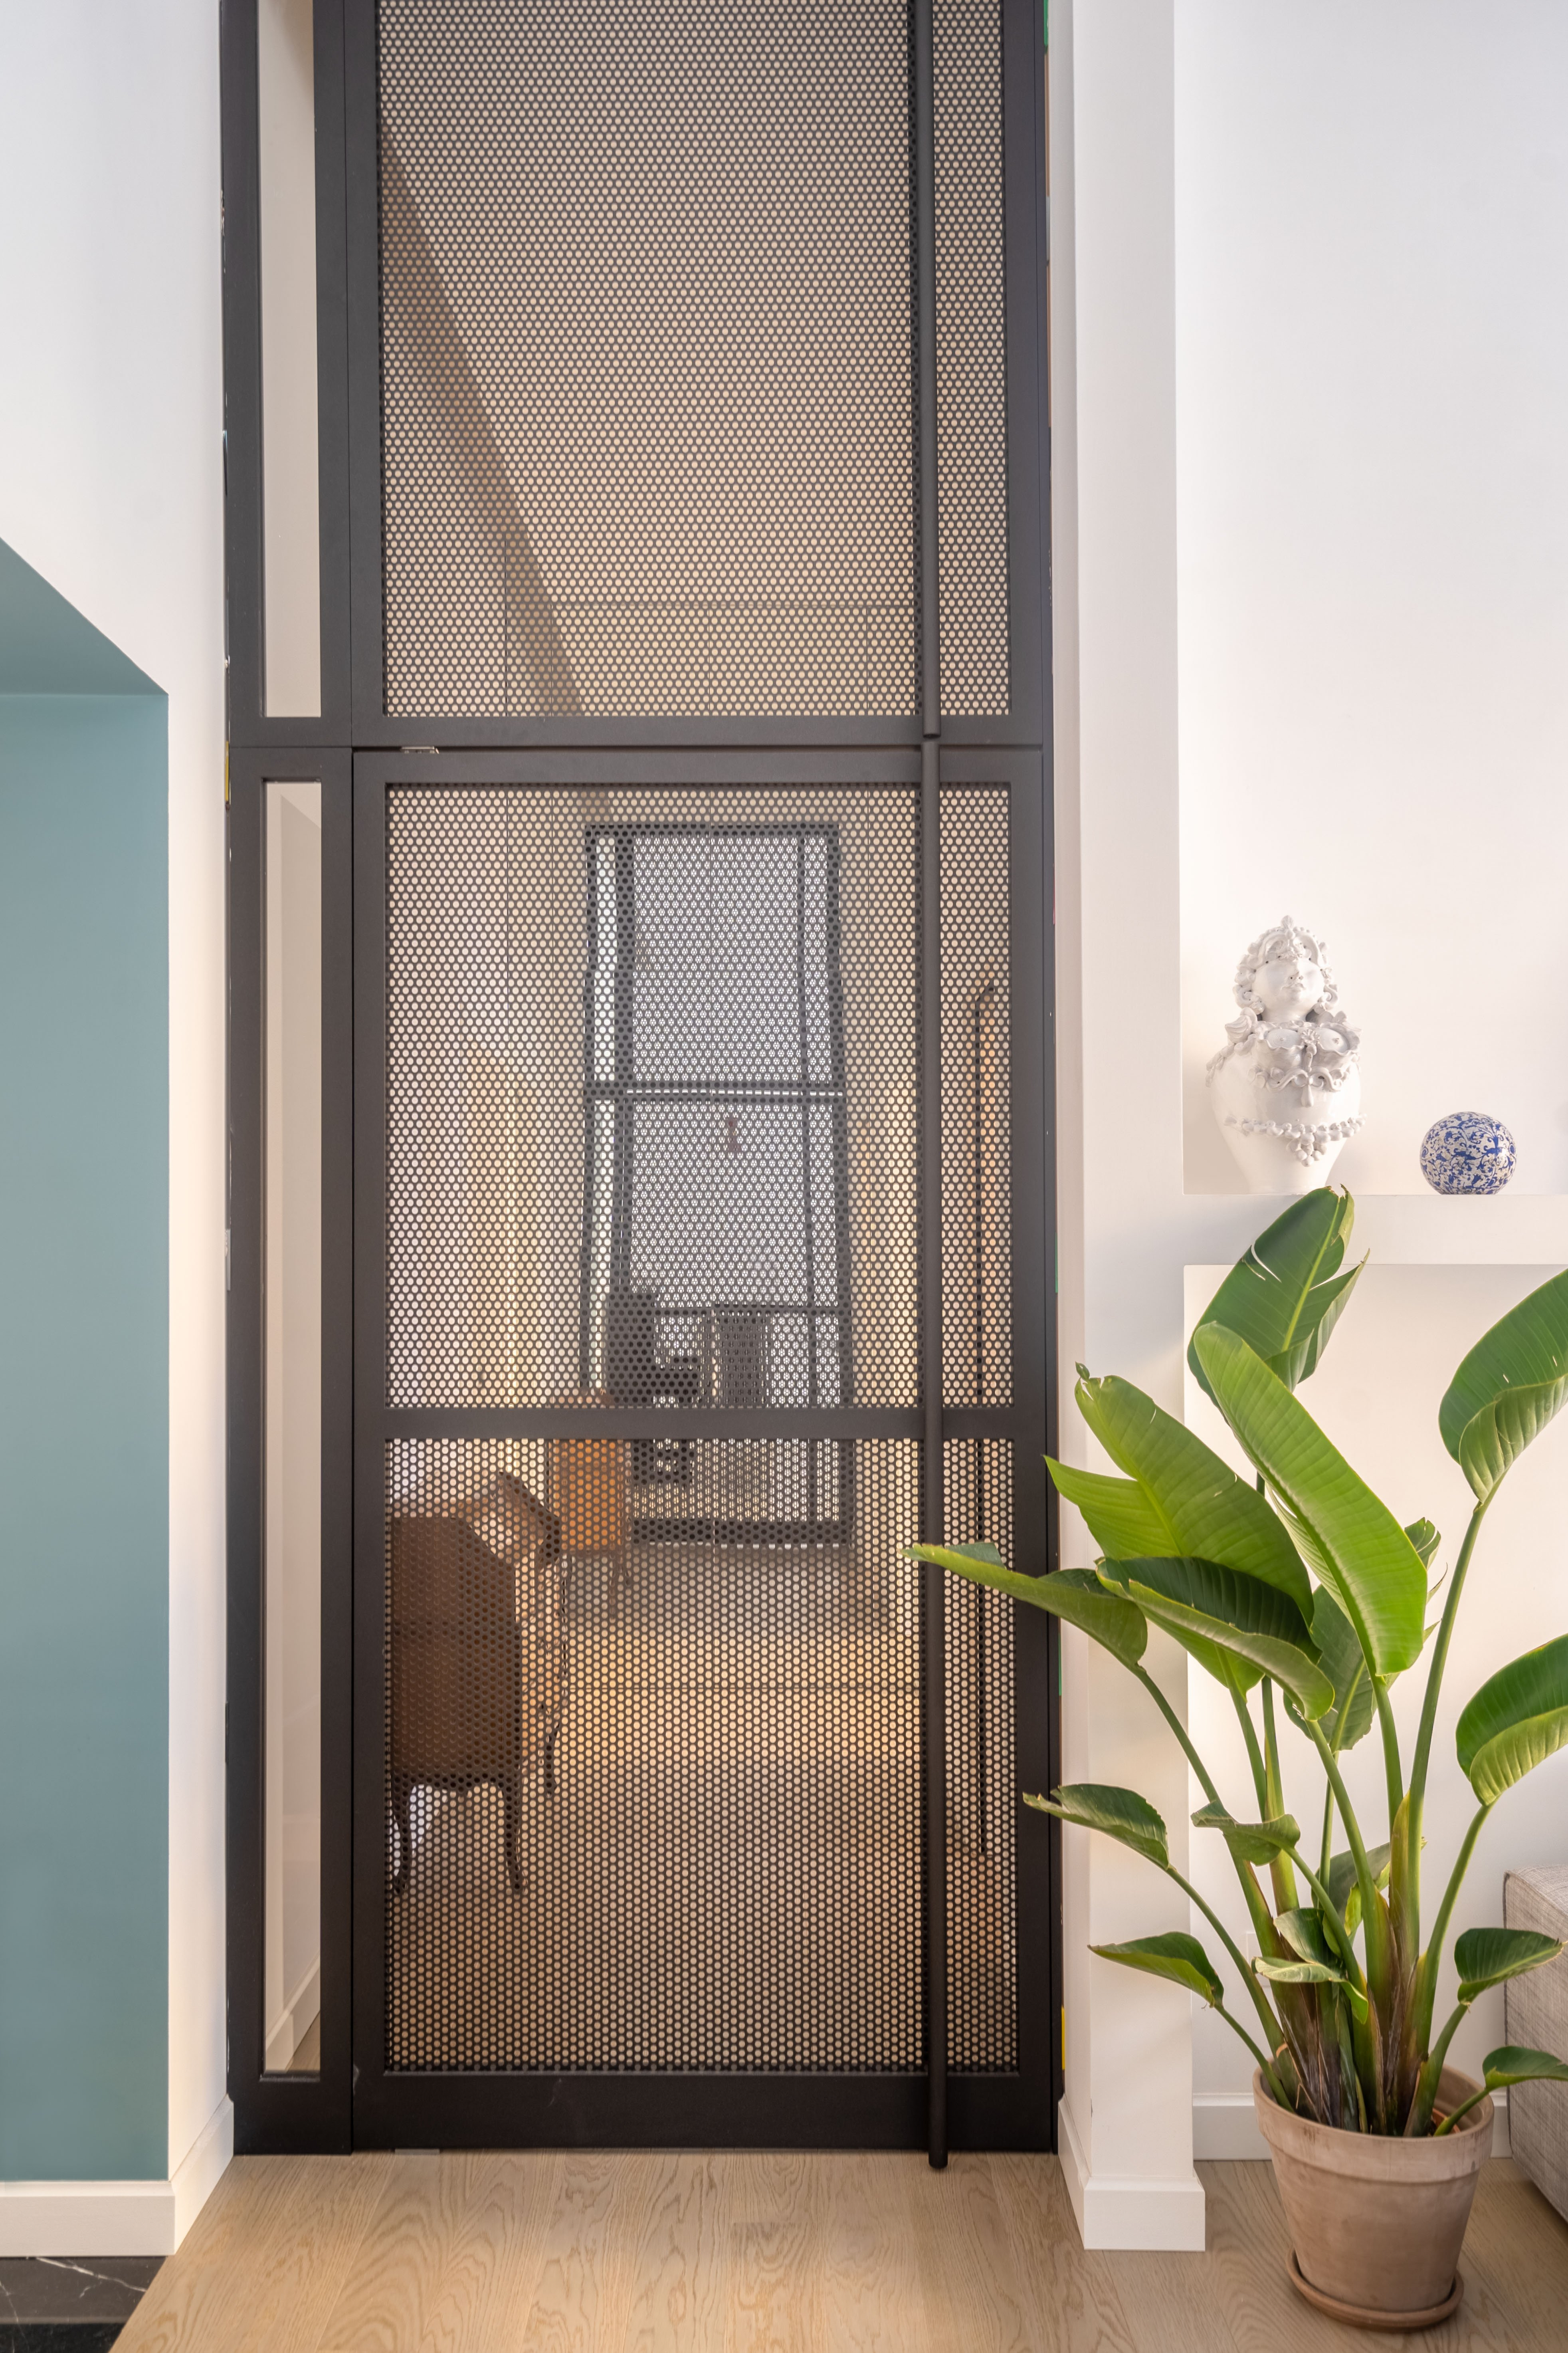 Statement interior pivot door from perforated steel. By Studio Tamat, with FritsJurgens System M pivot hinge